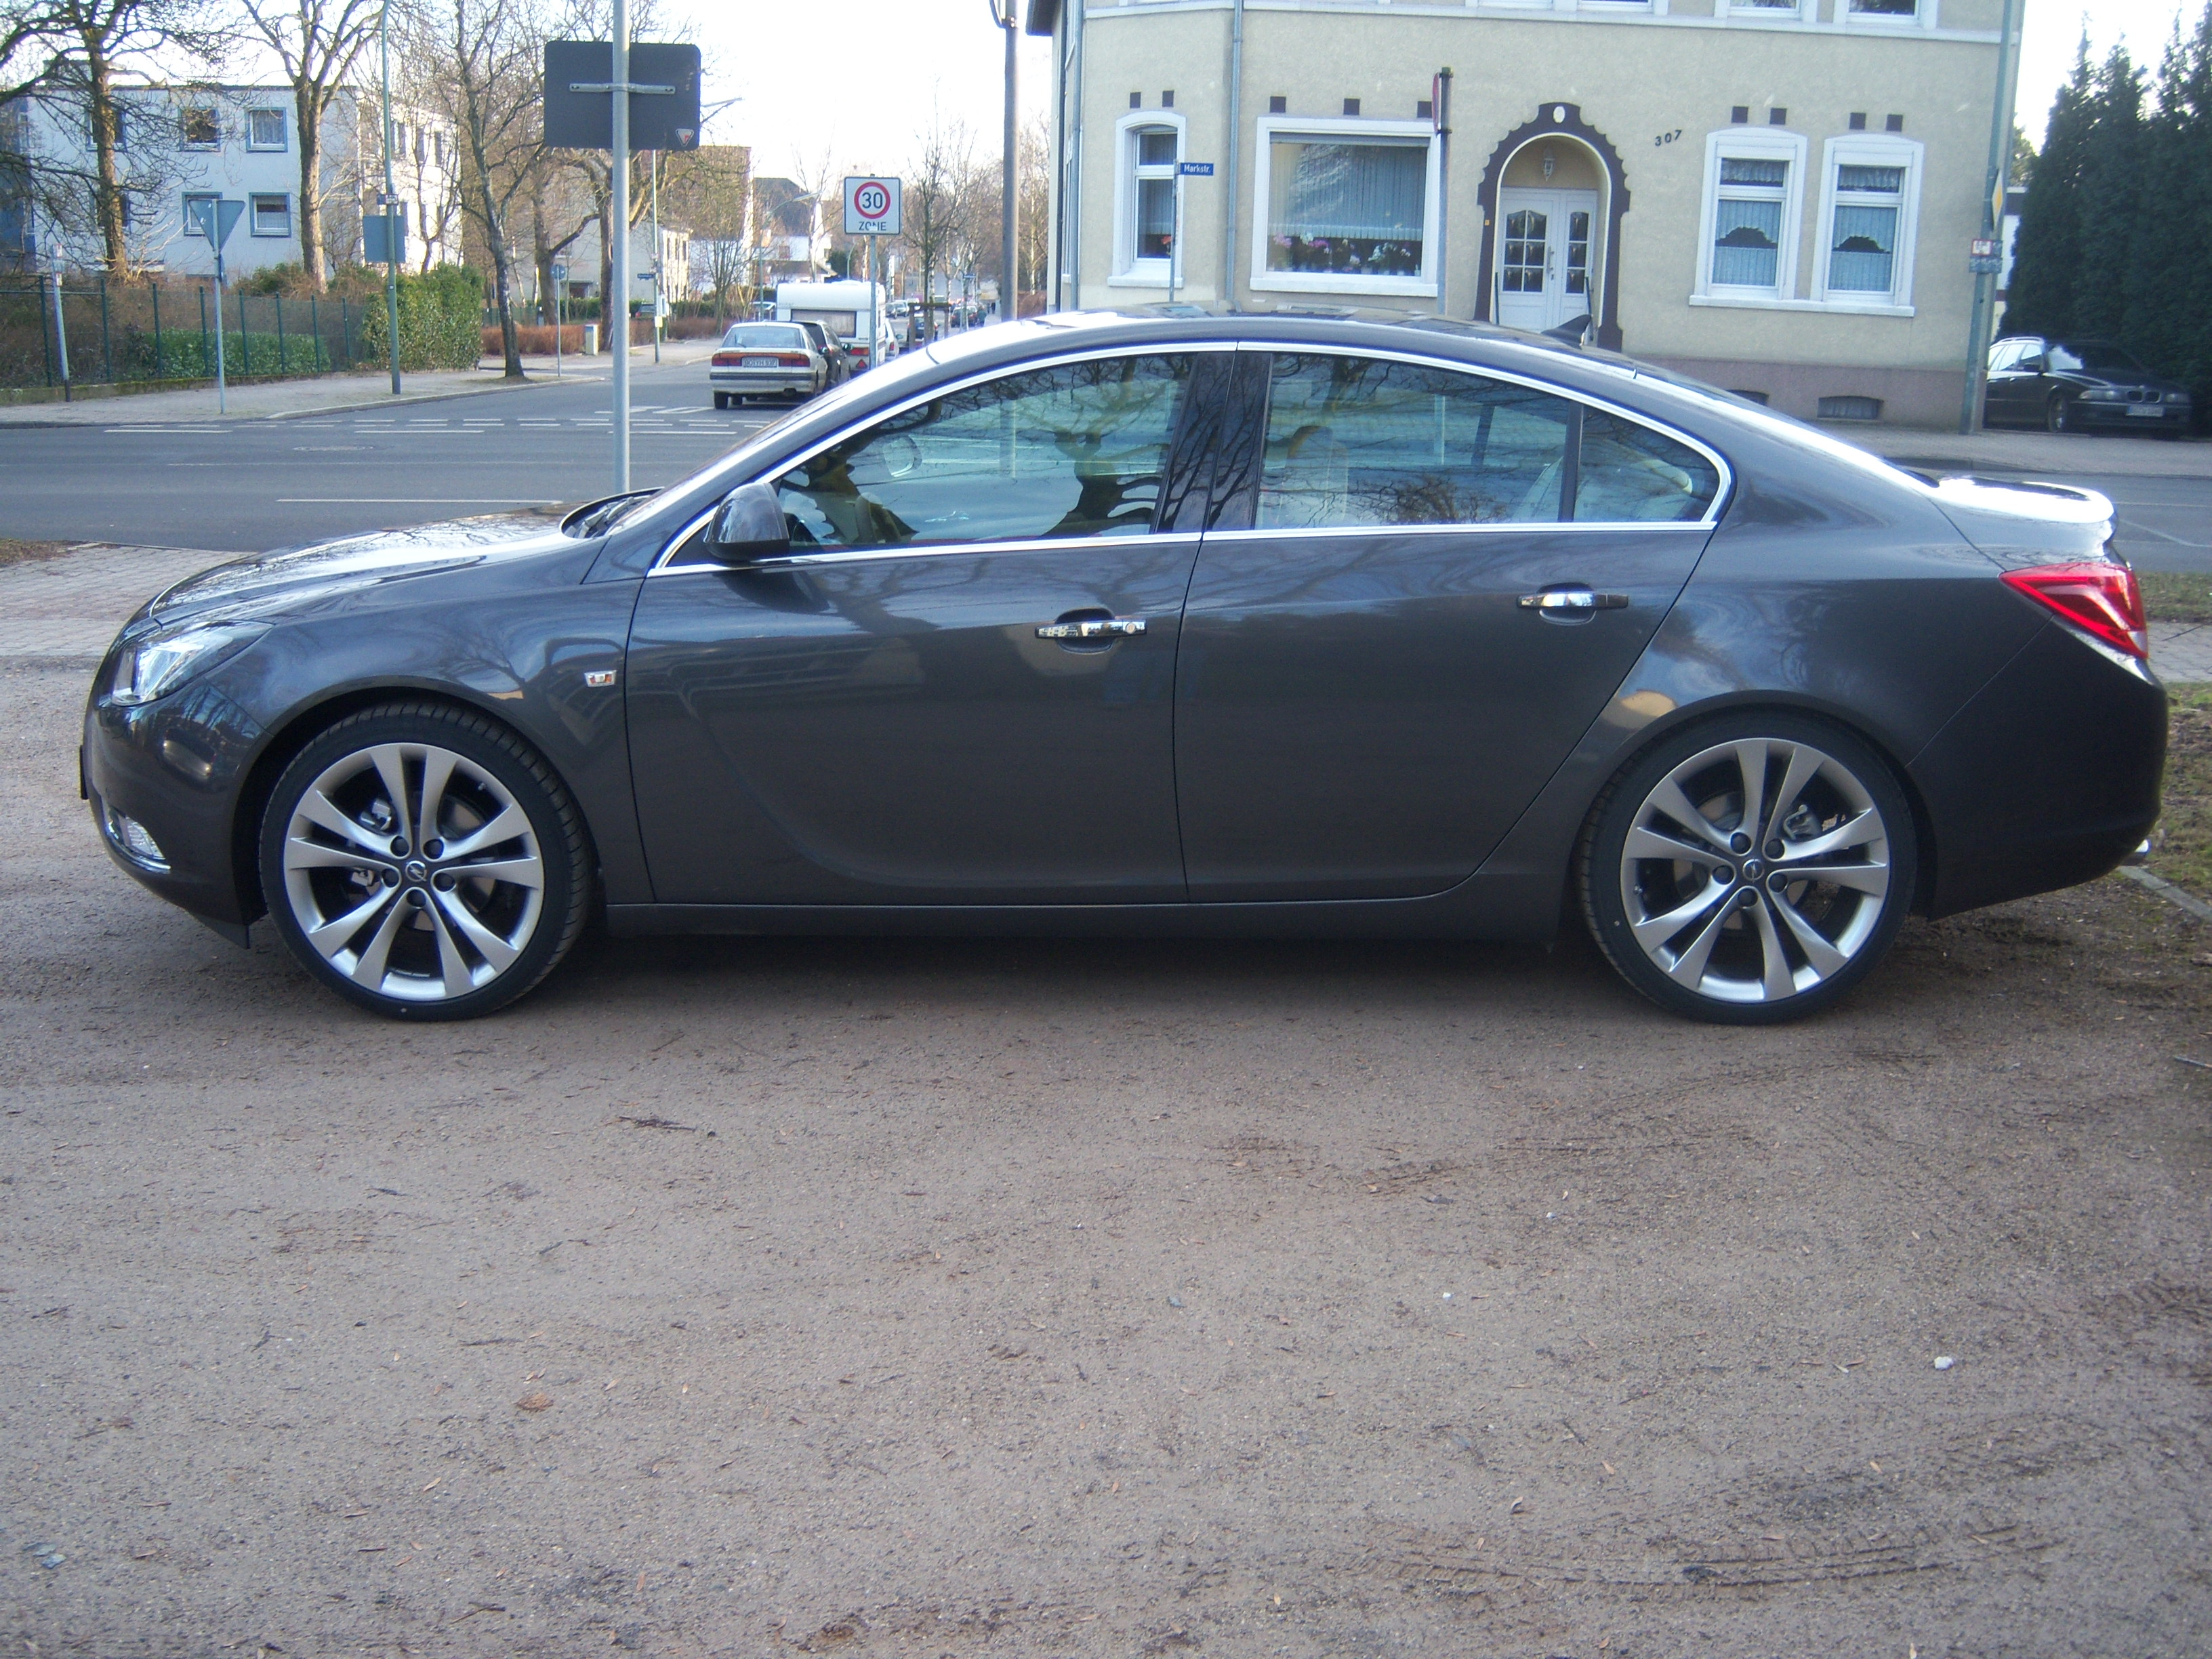 opel insignia 20 photos reviews news specs buy car. Black Bedroom Furniture Sets. Home Design Ideas